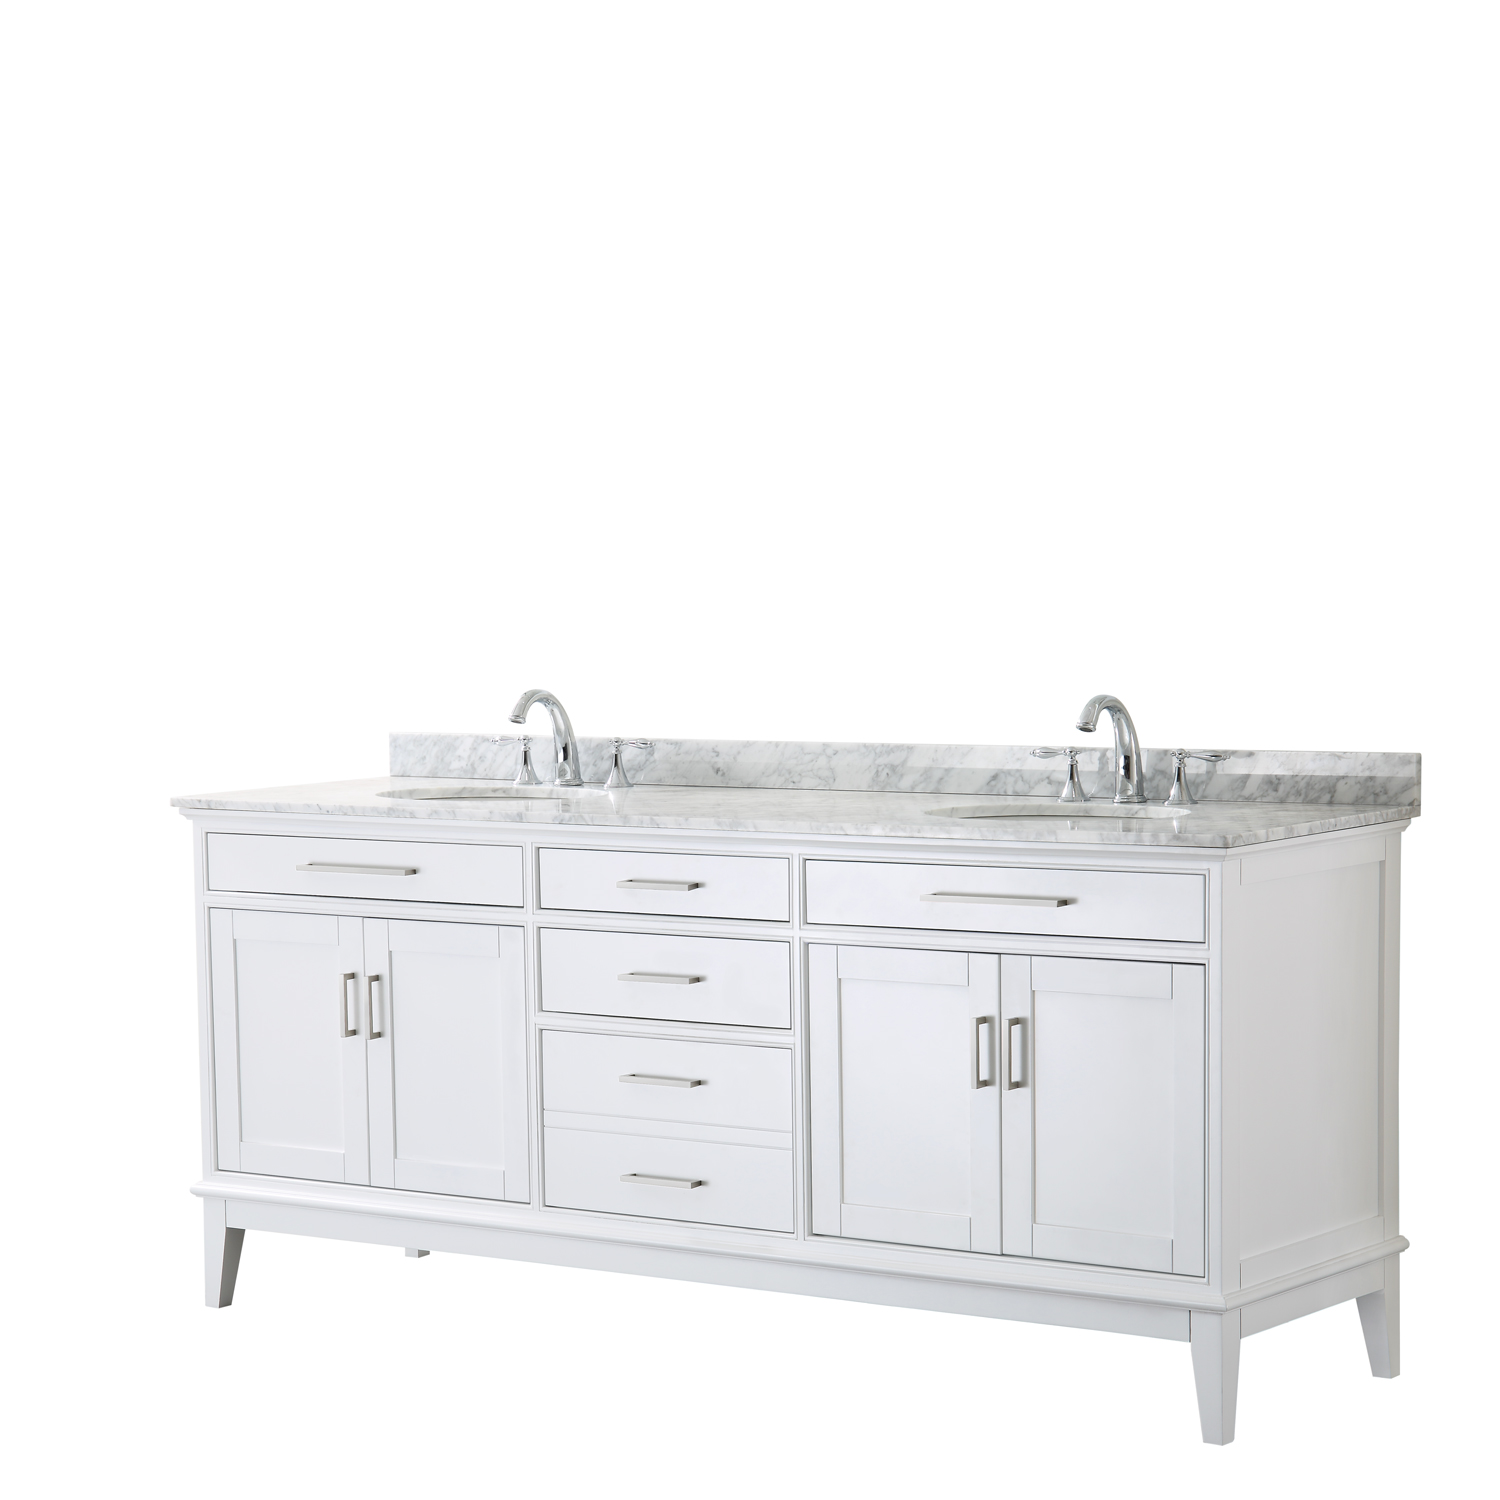 "Contemporary 80"" Double Bathroom Vanity in White, White Carrara Marble Countertop with Undermount Sinks, and Mirror Options"